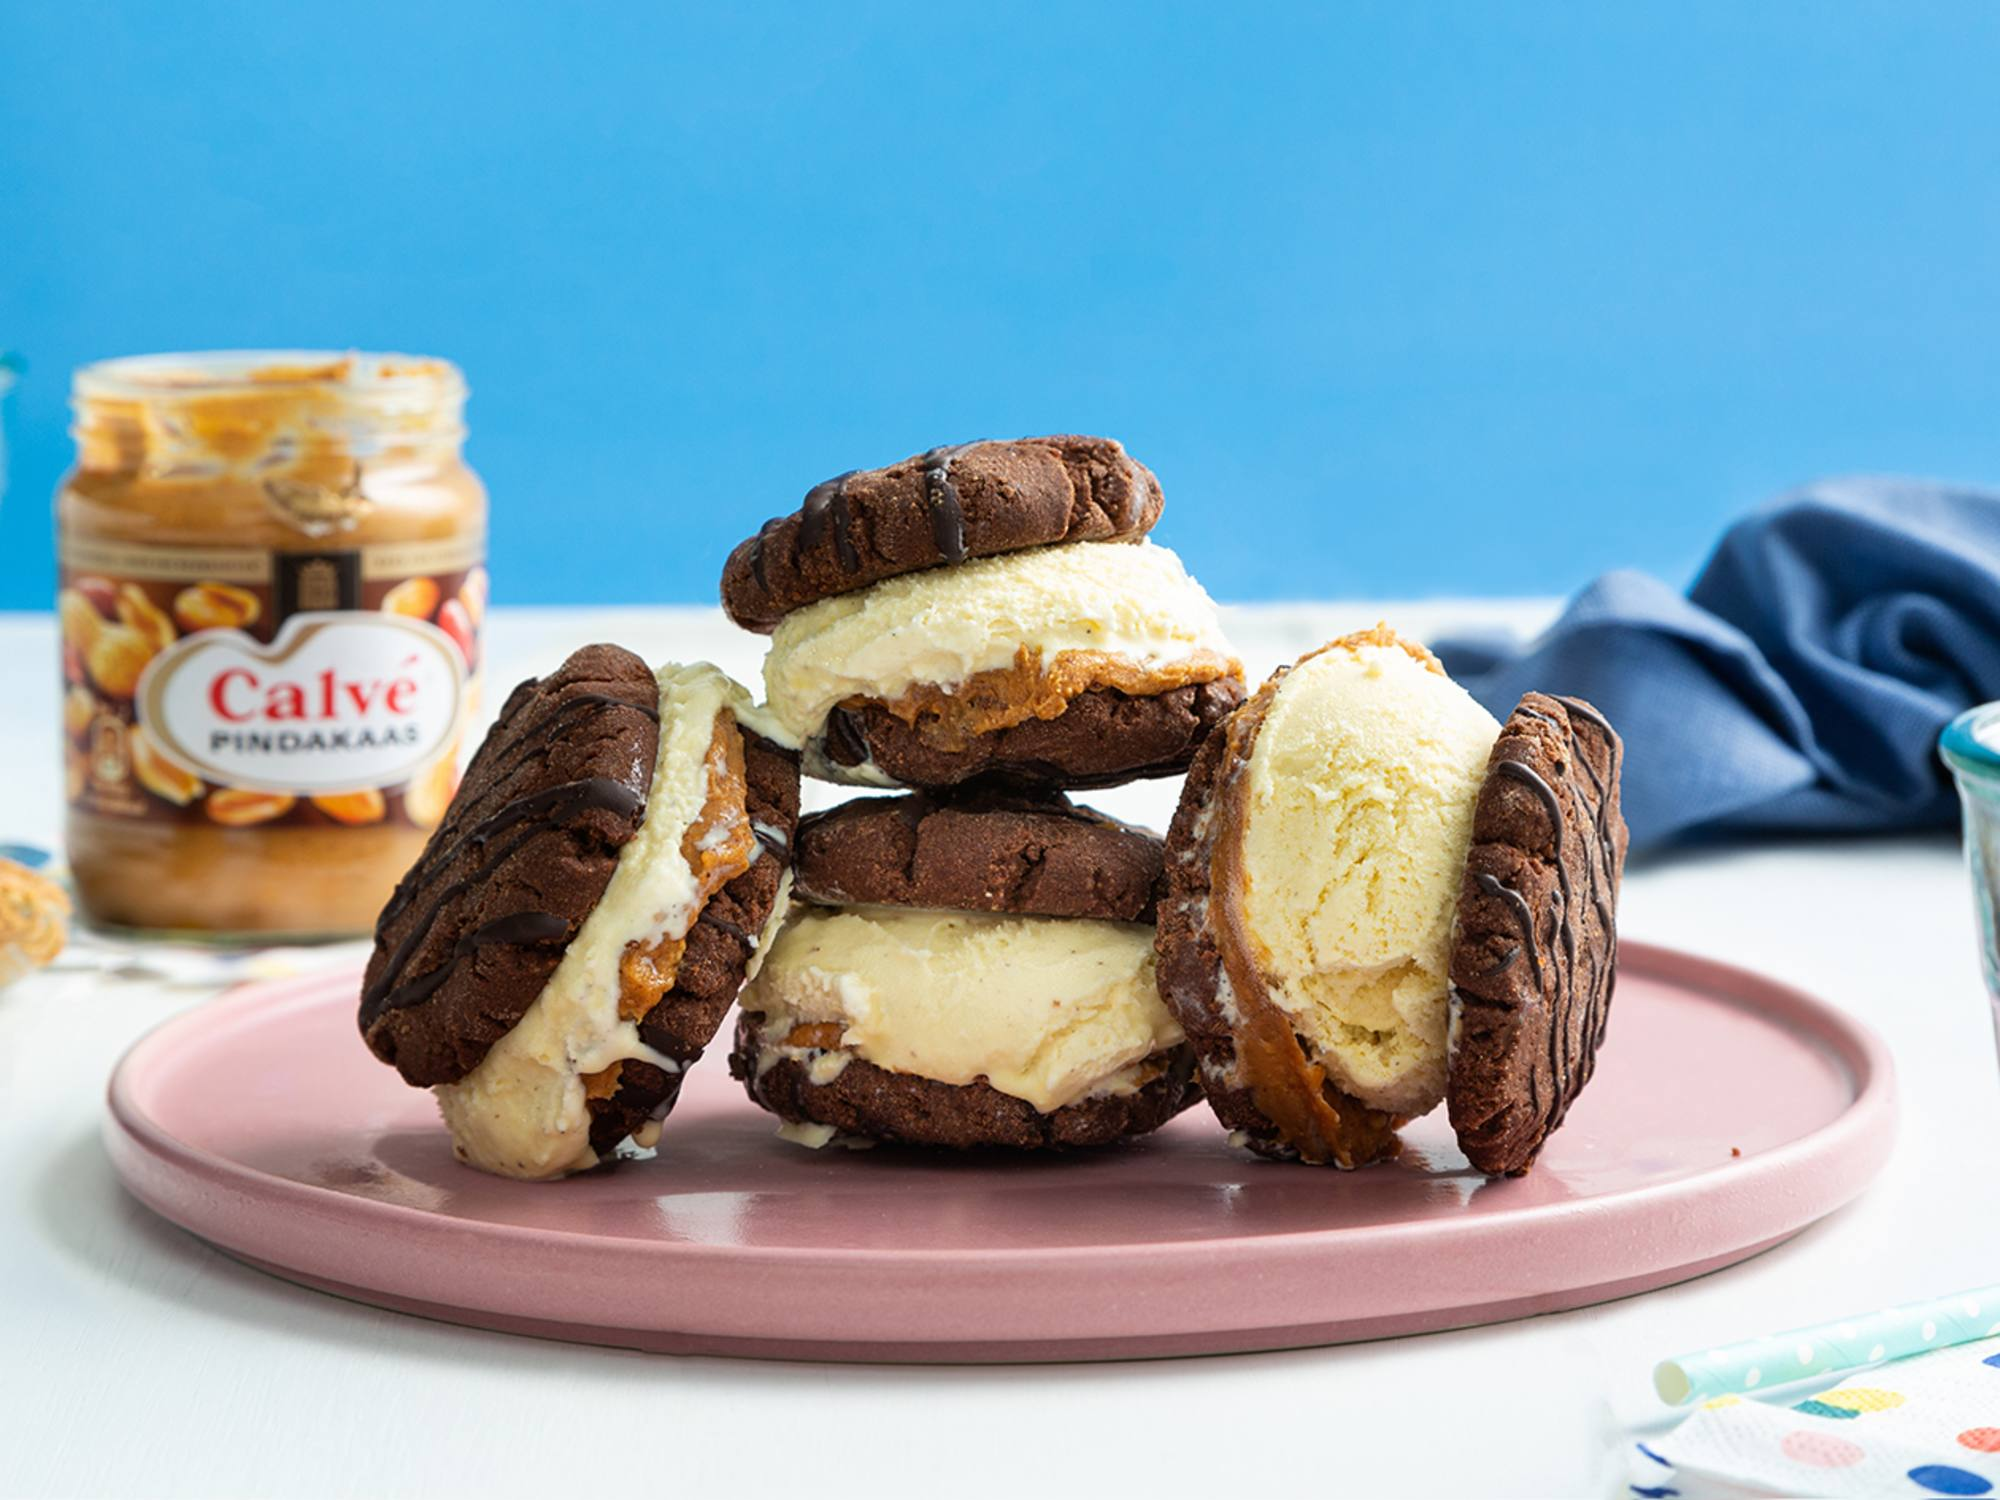 Pindakaas icecream sandwiches